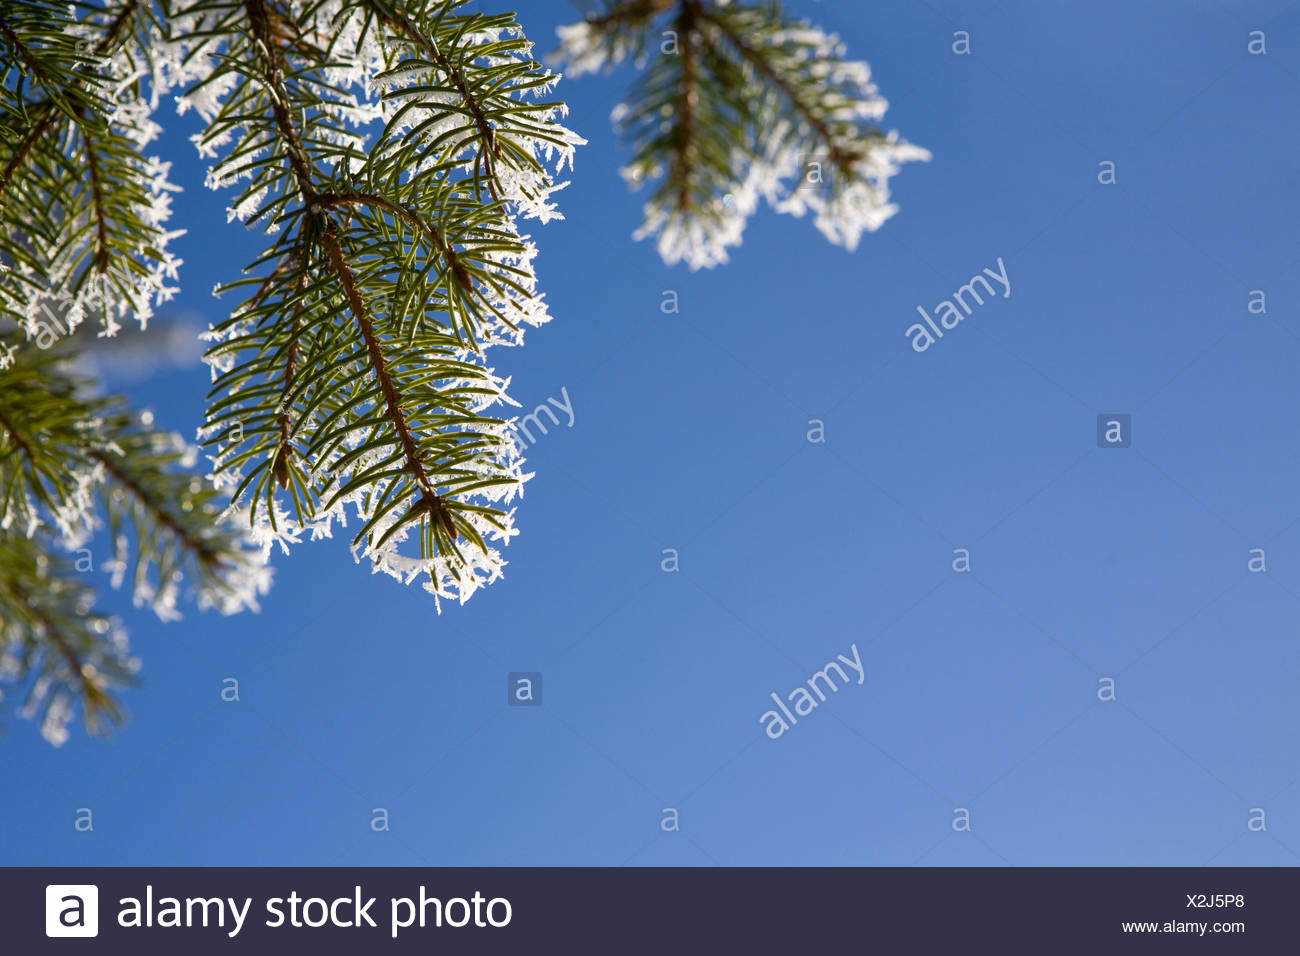 Close up of pine needles with hoar frost - Stock Image